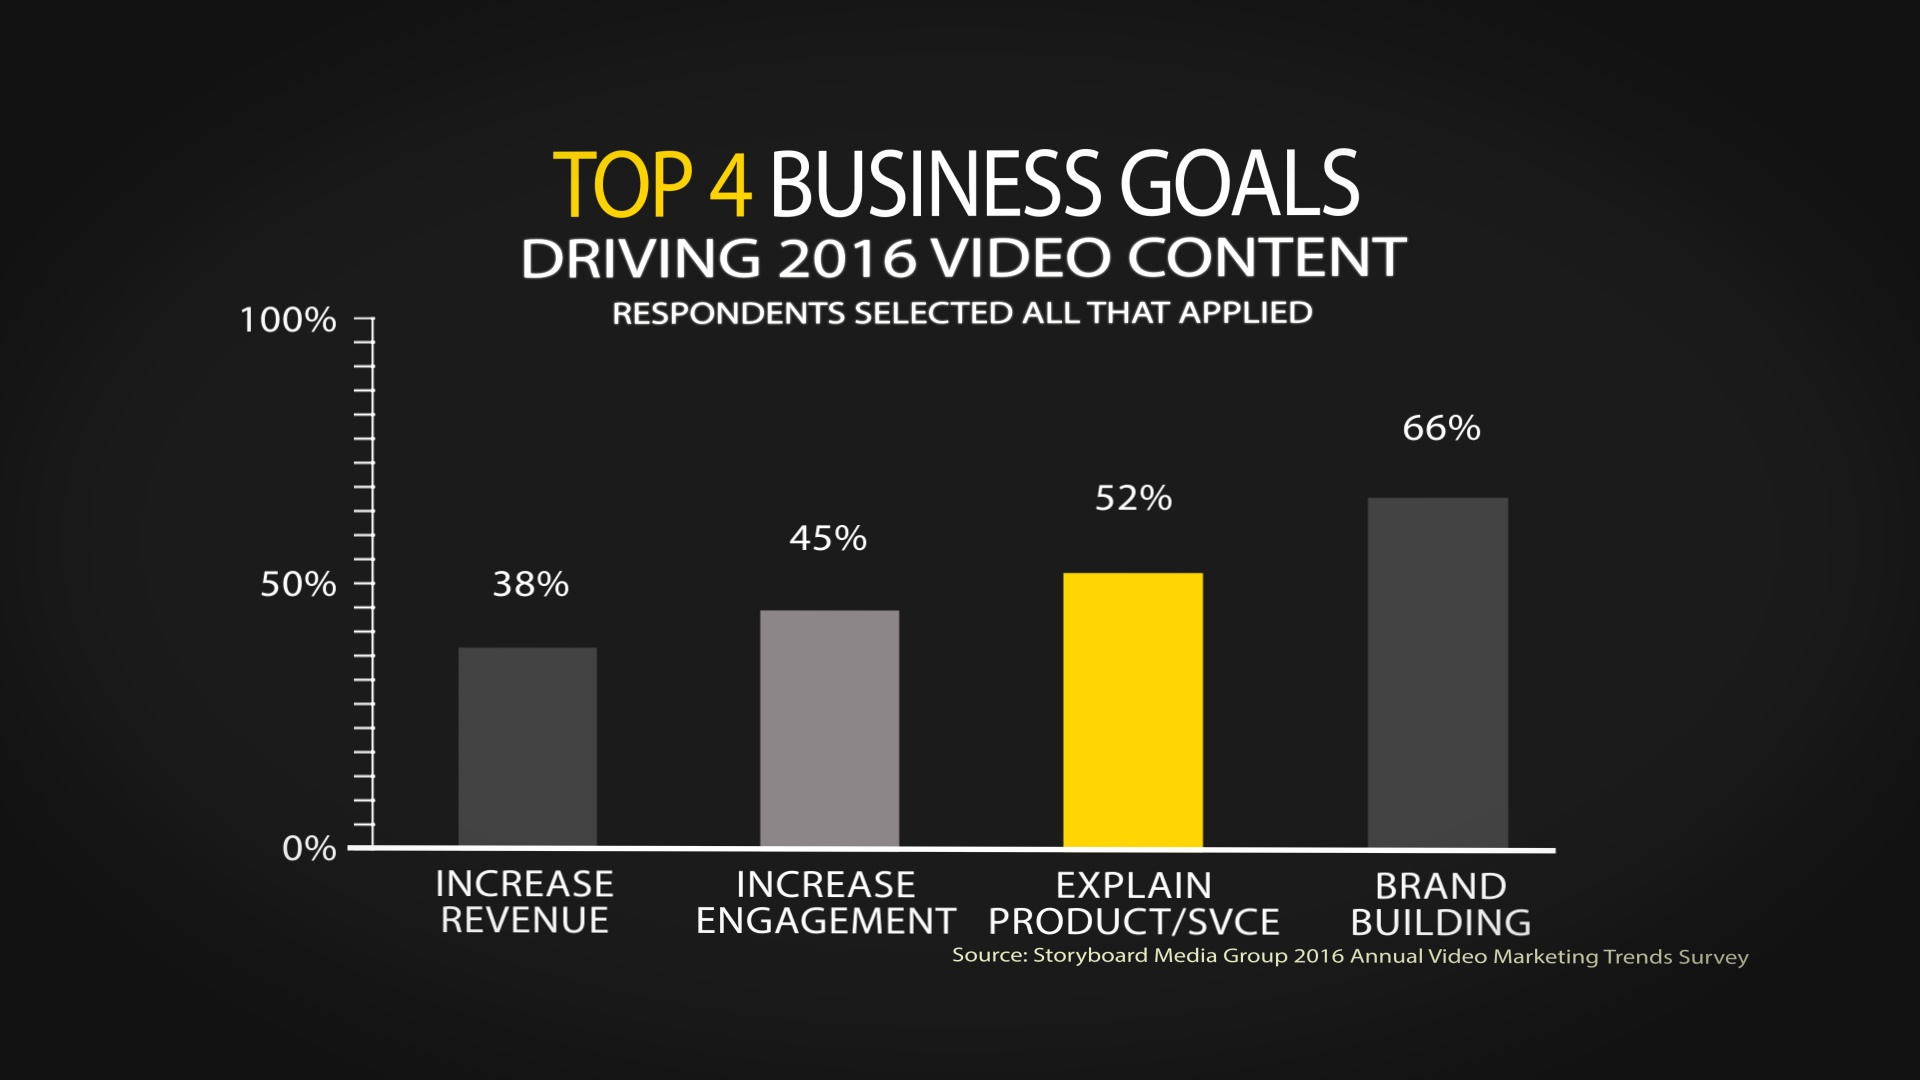 How does your strategy for video content marketing match up with the survey results?